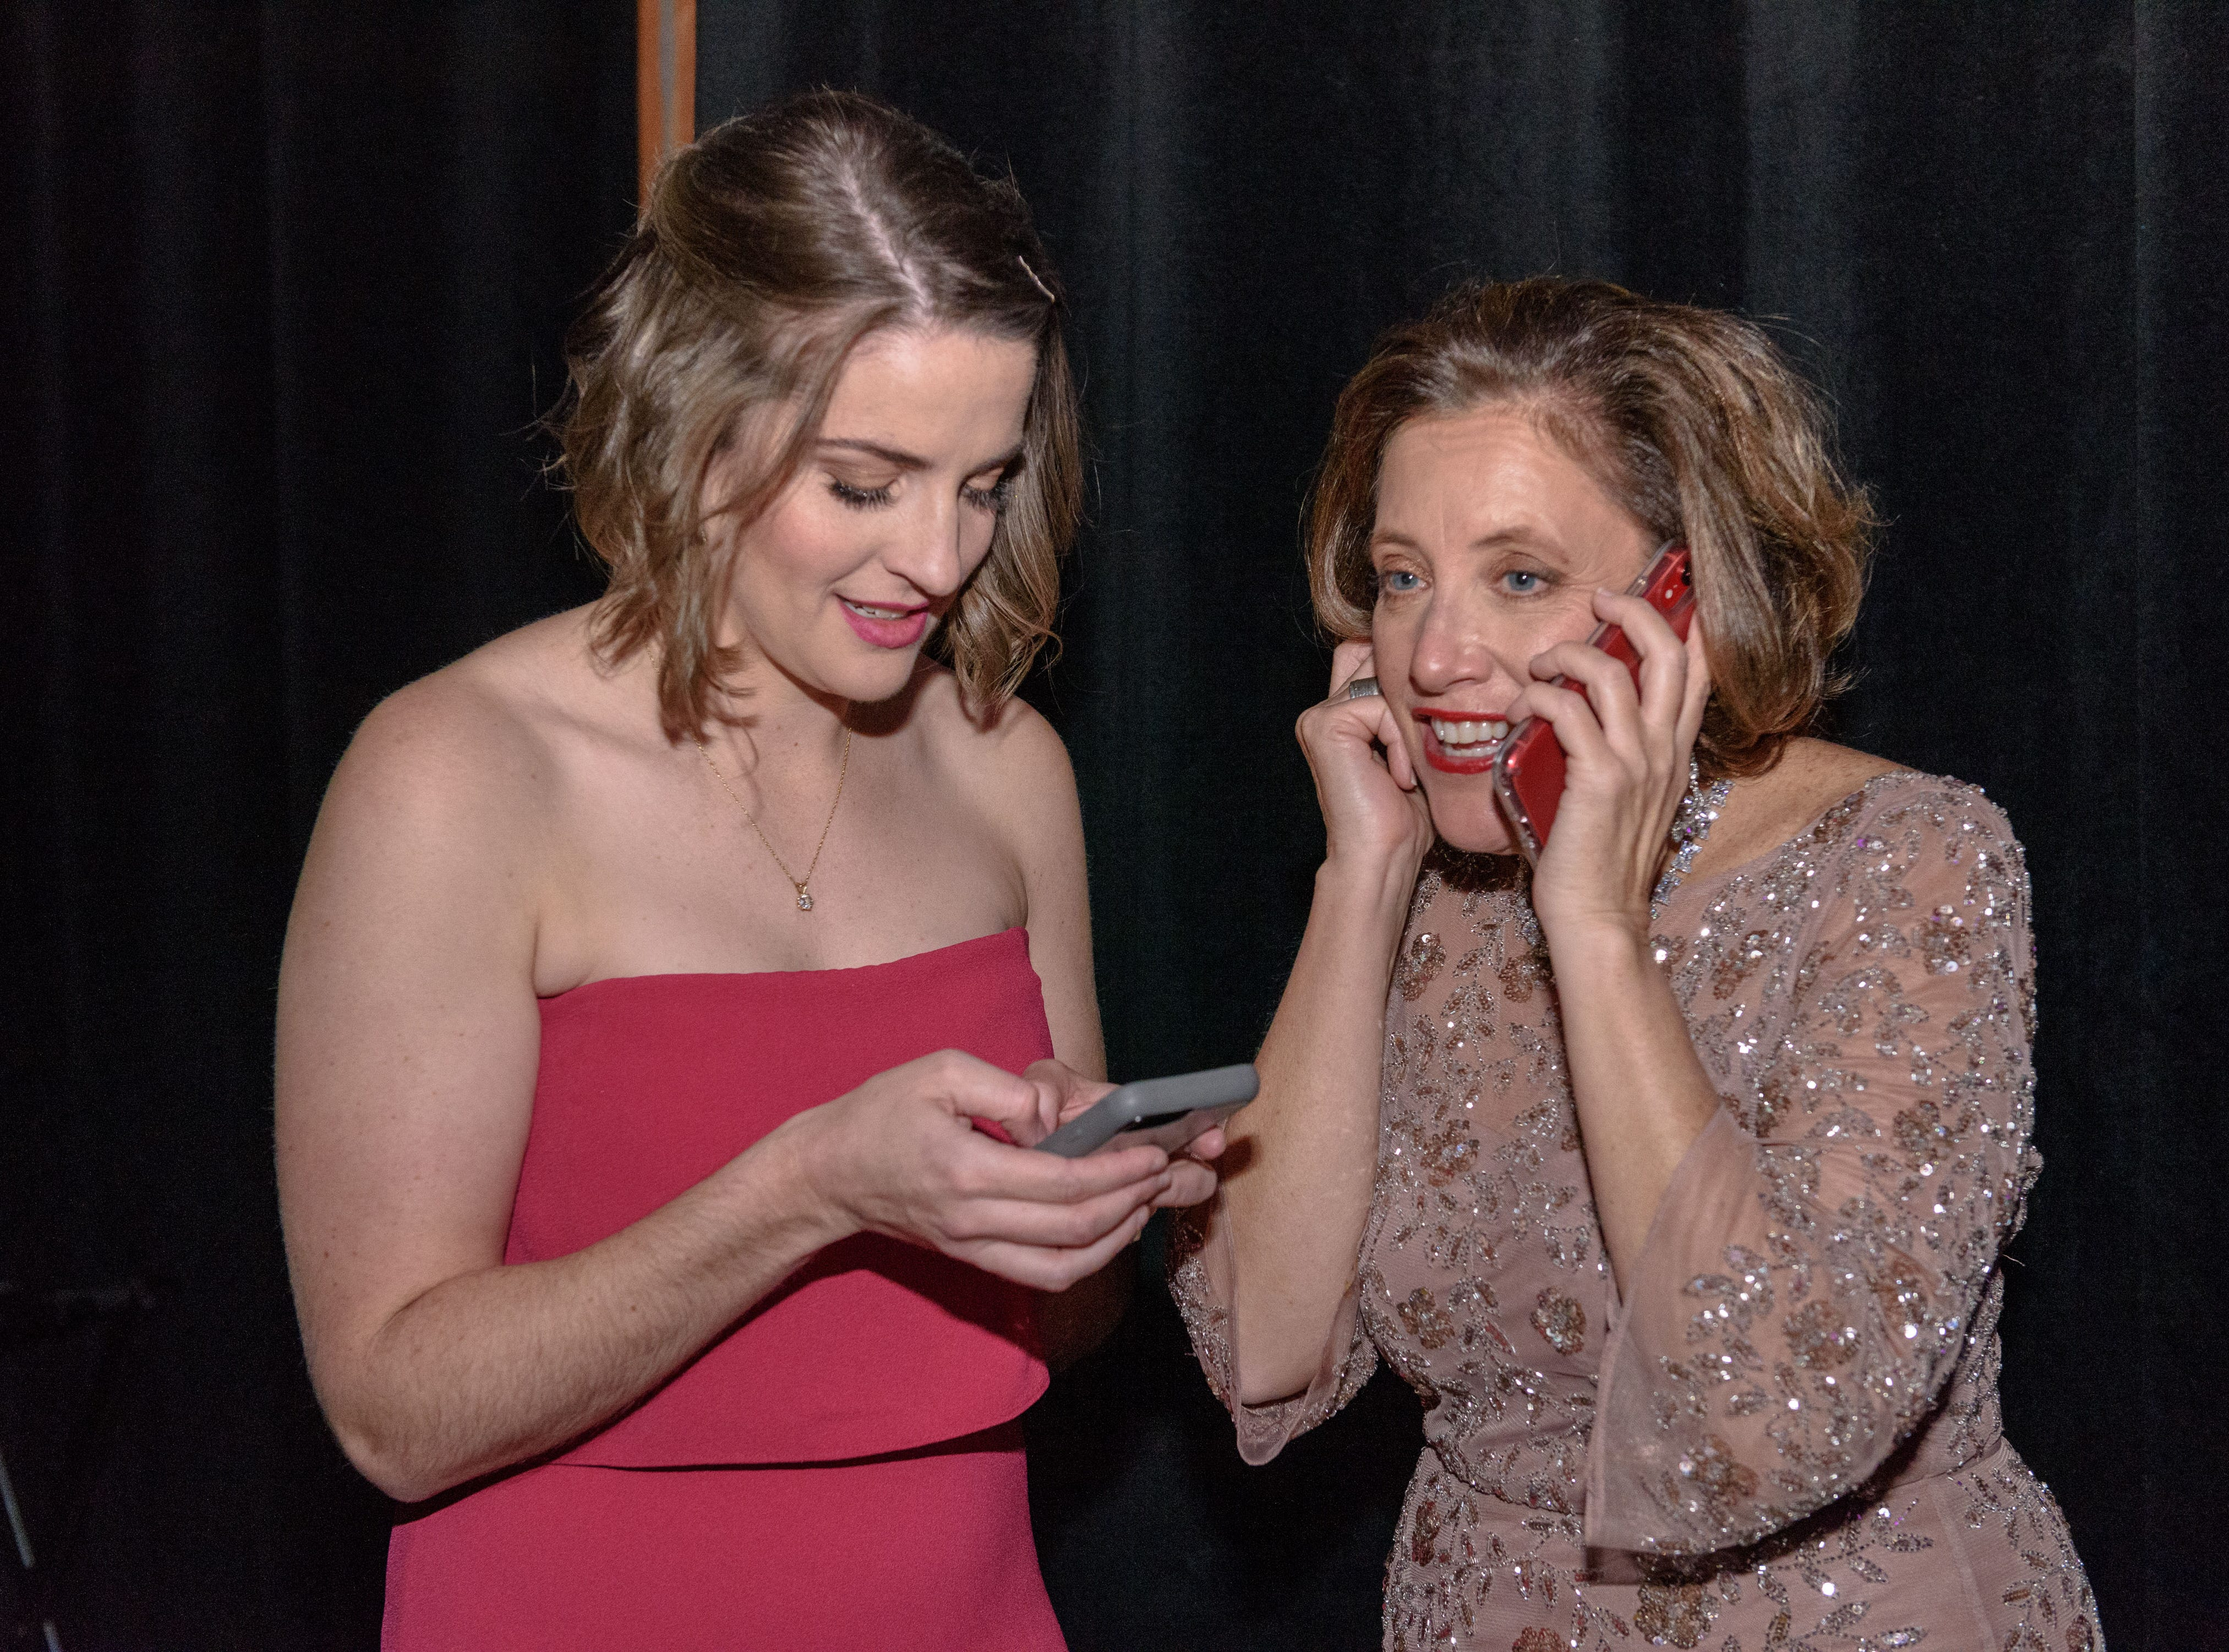 Julia Leggett and Lynnie Meyer, Ed.D, Chief Development Officer, Norton Healthcare go backstage to call a raffle winner at the Snow Ball Gala at the Omni Hotel, a benefit for the Jennifer Lawrence Cardiac Intensive Care Unit (CICU) at Norton ChildrenÕs Hospital. Nov. 17, 2018